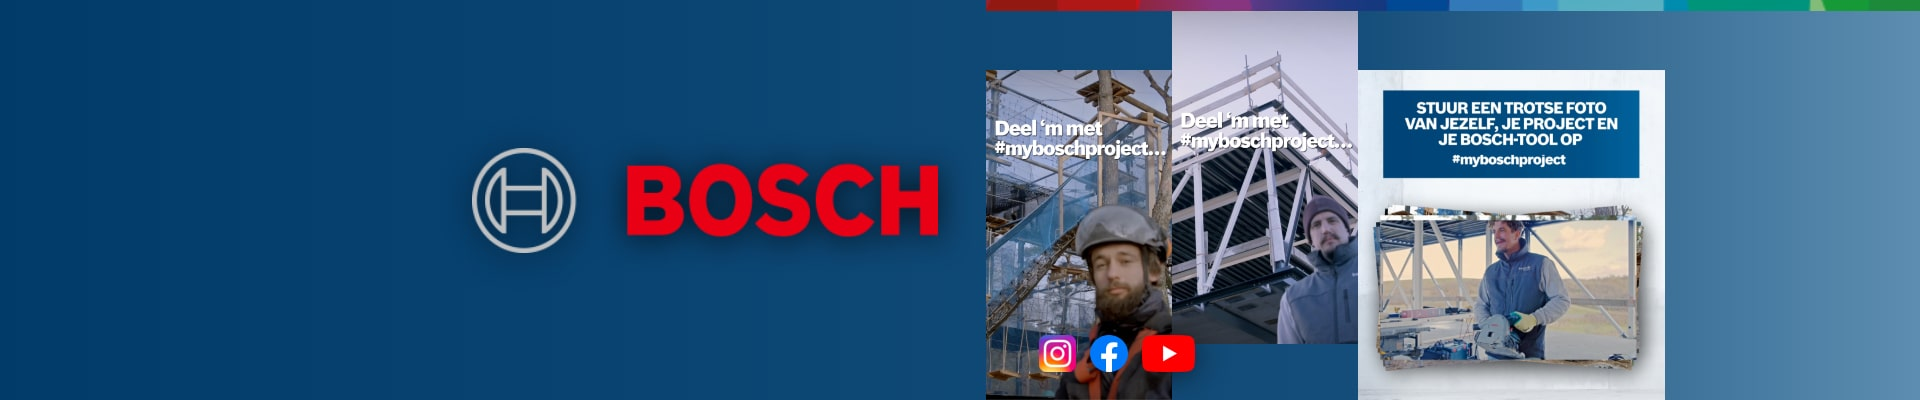 Bosch Professional Power Tools: Engagementcampagne #myboschproject